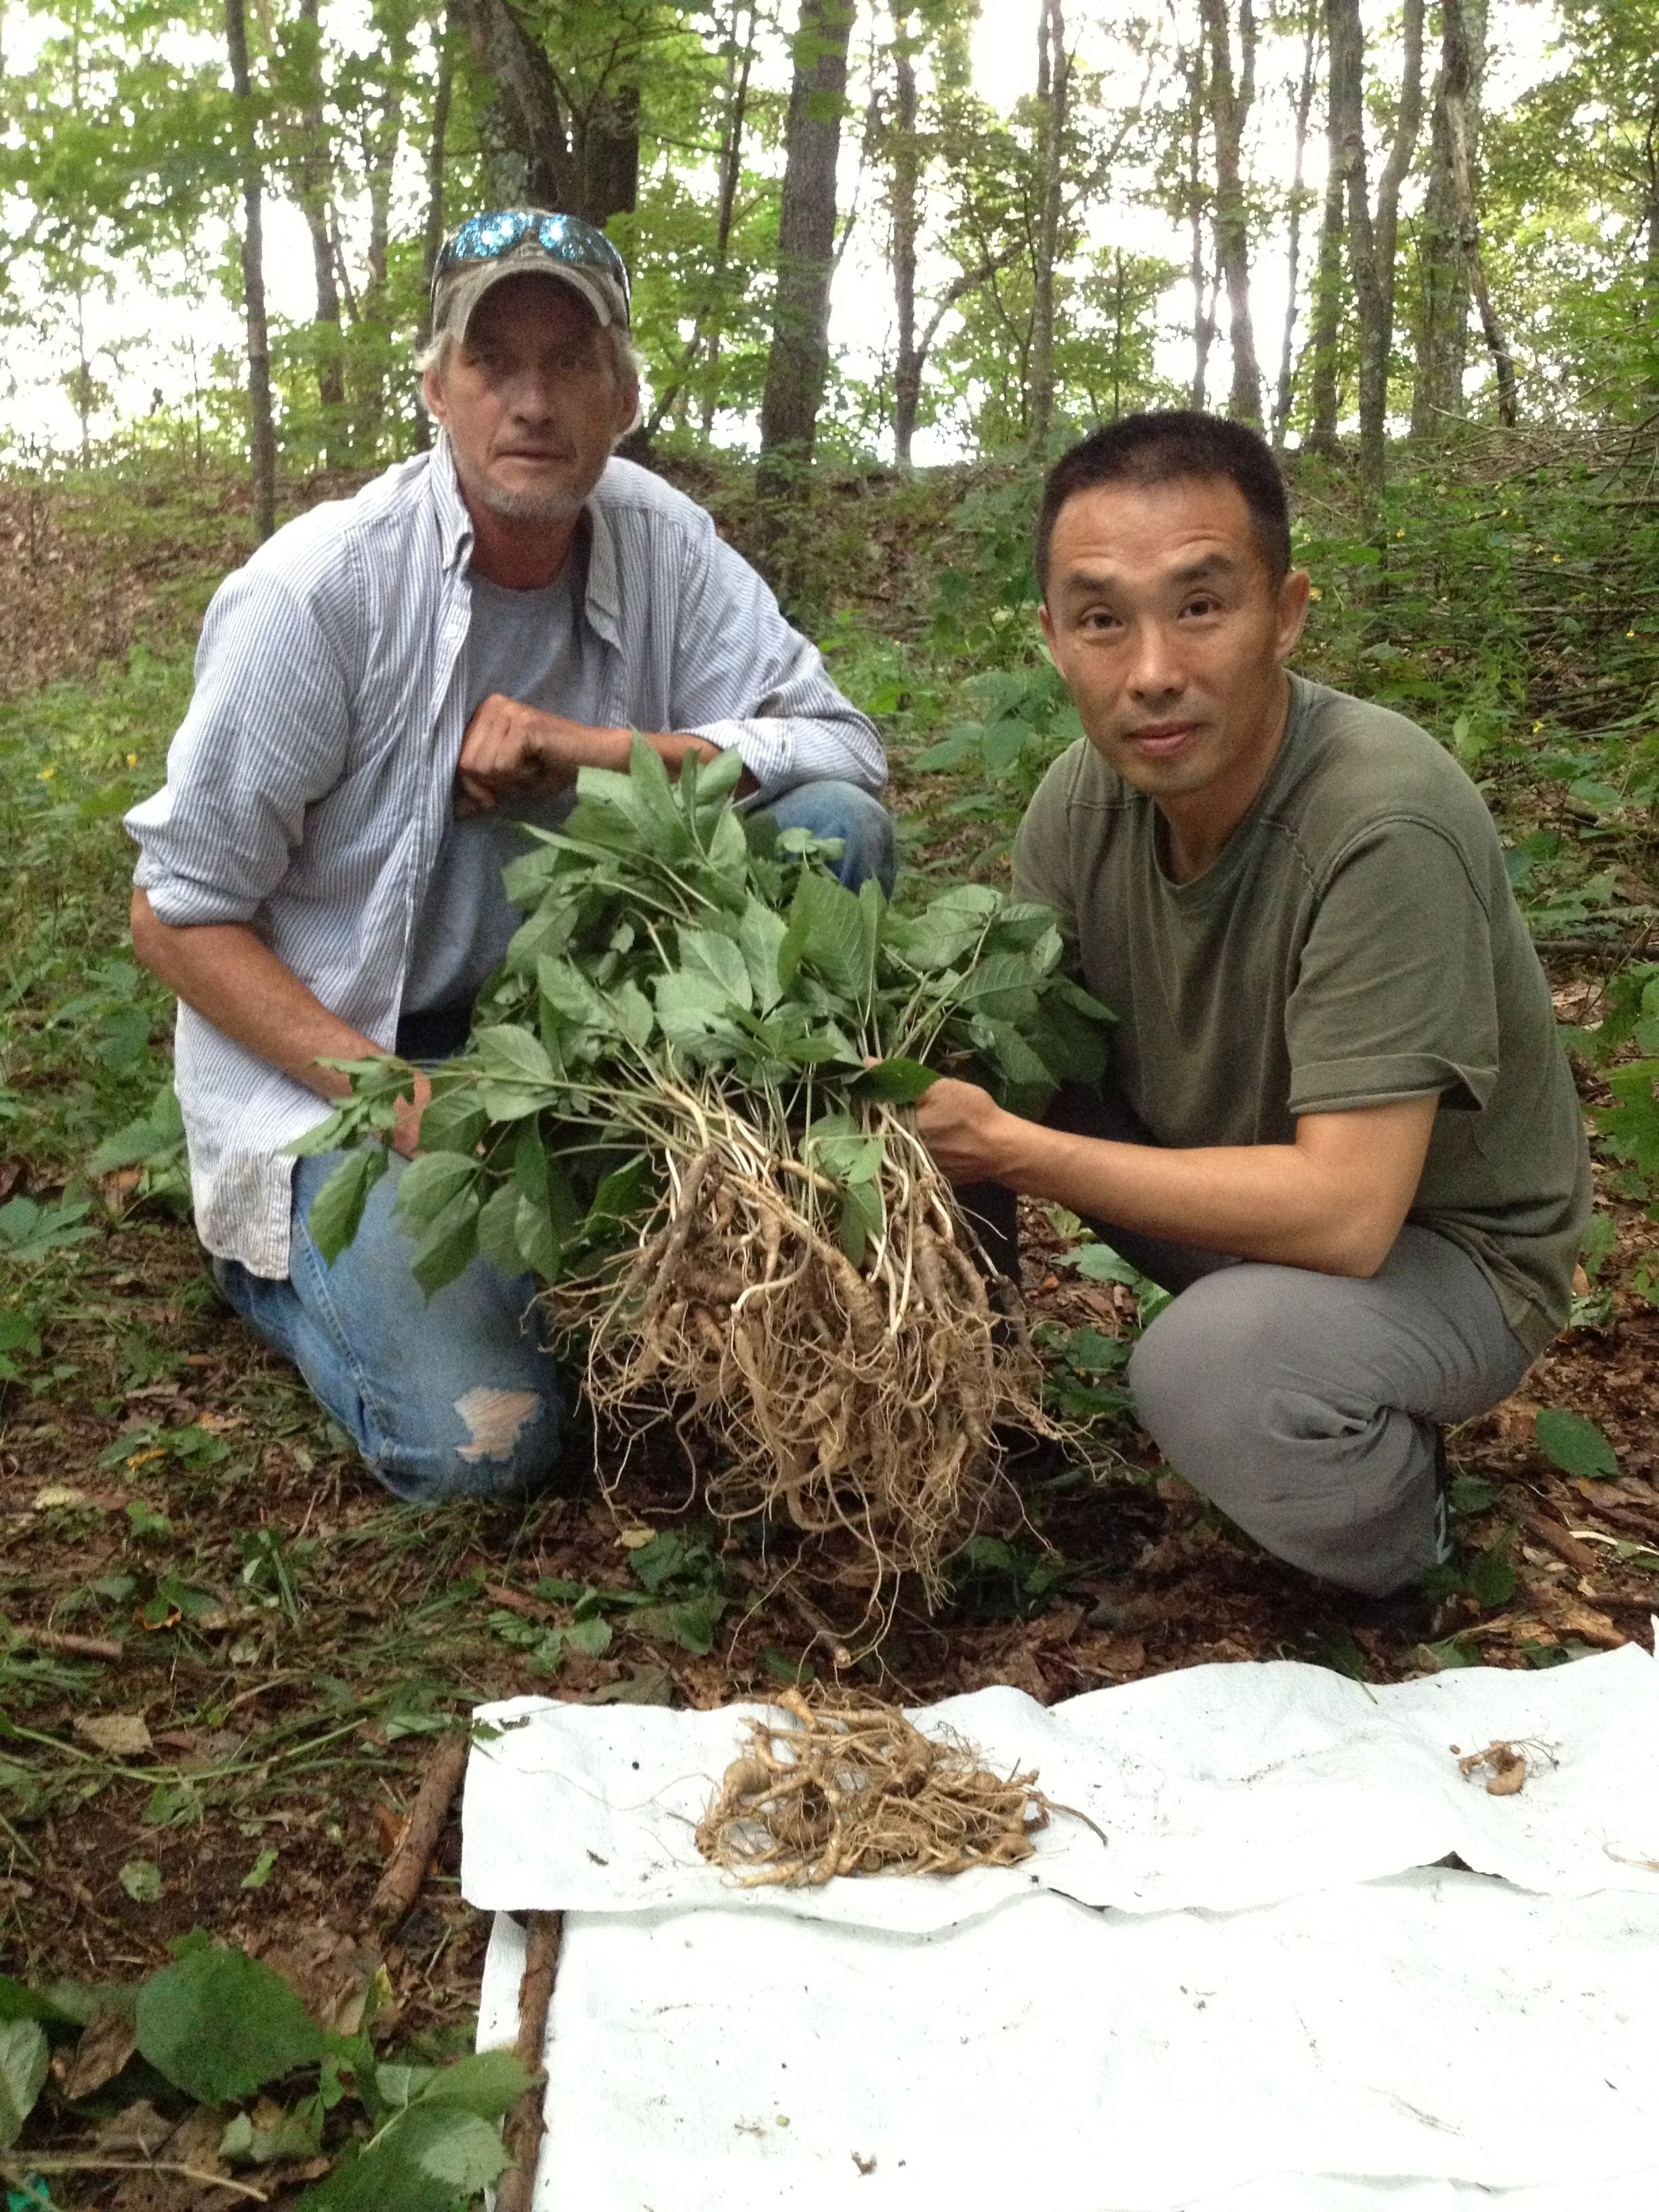 Ginseng In Deutschland Amazing Ginseng Hunt In Tn Ginseng Growing Ginseng Edible